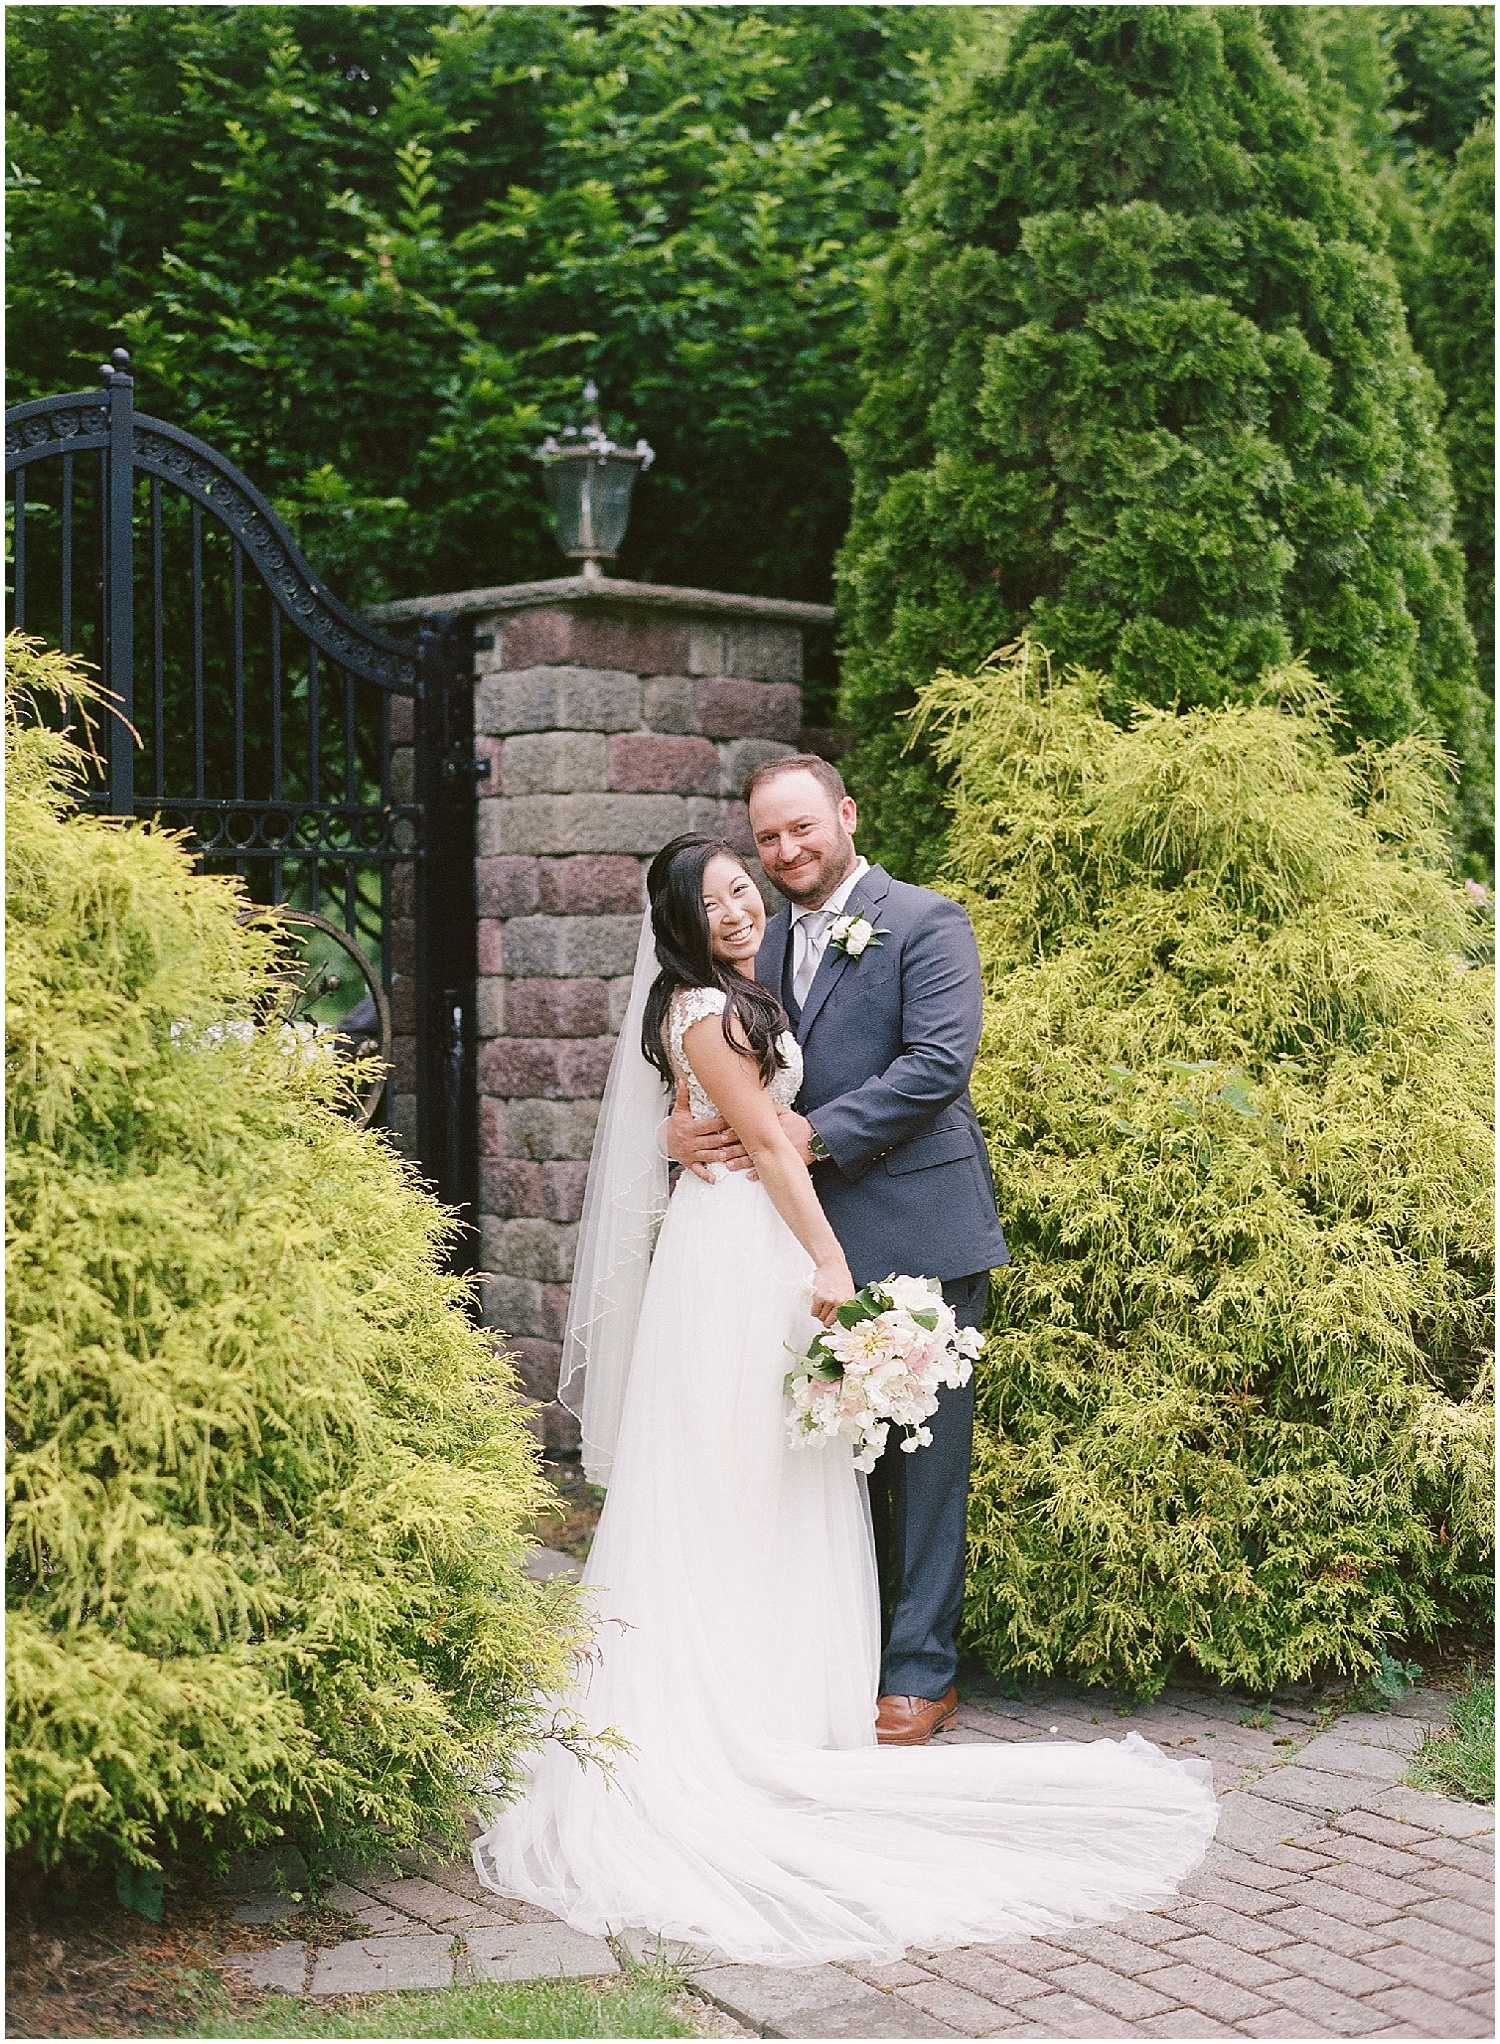 new jersey outdoor wedding, Monmouth University Wilson Hall, natural light photographer, film photographer, bride and groom looking at camera